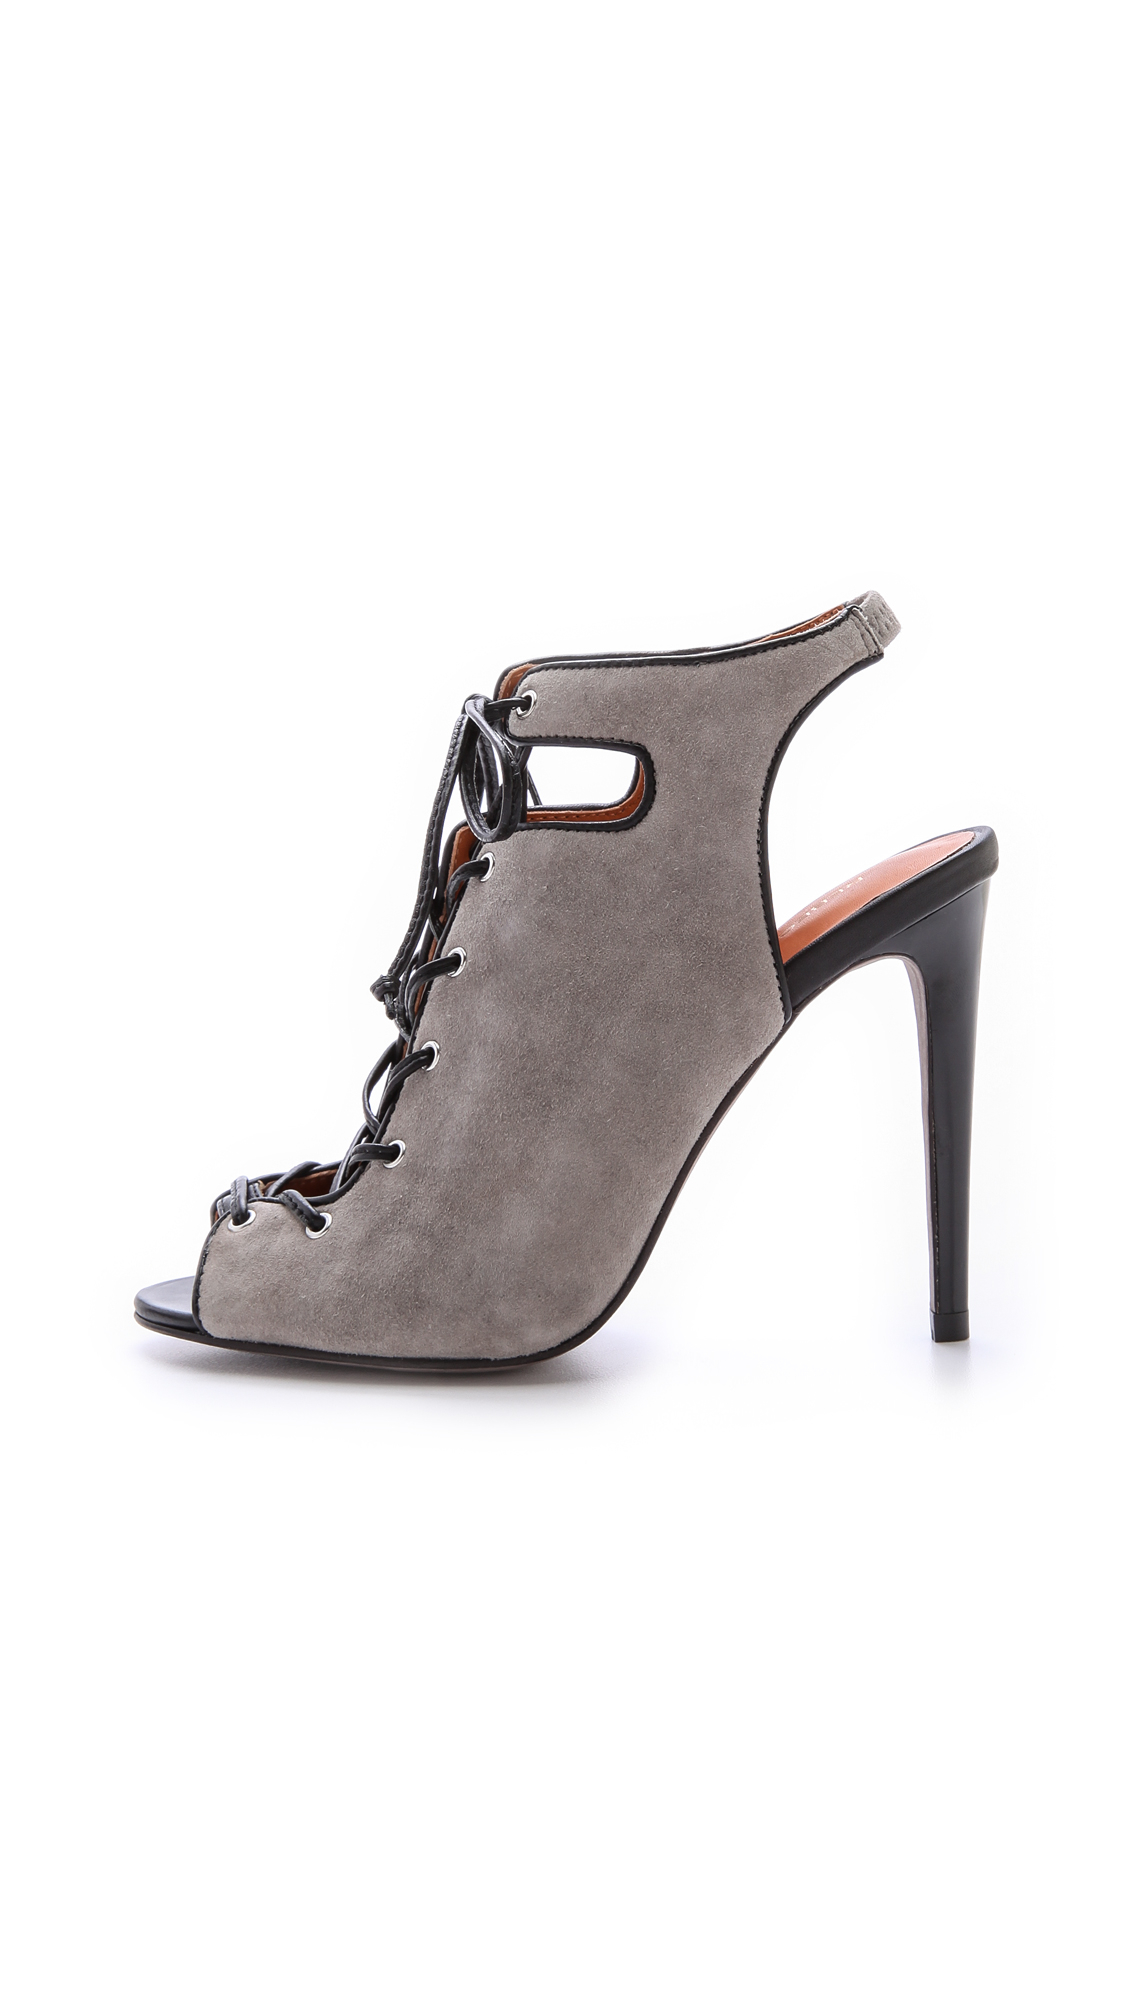 Lyst Rebecca Minkoff Rio High Heel Lace Up Sandals In Gray